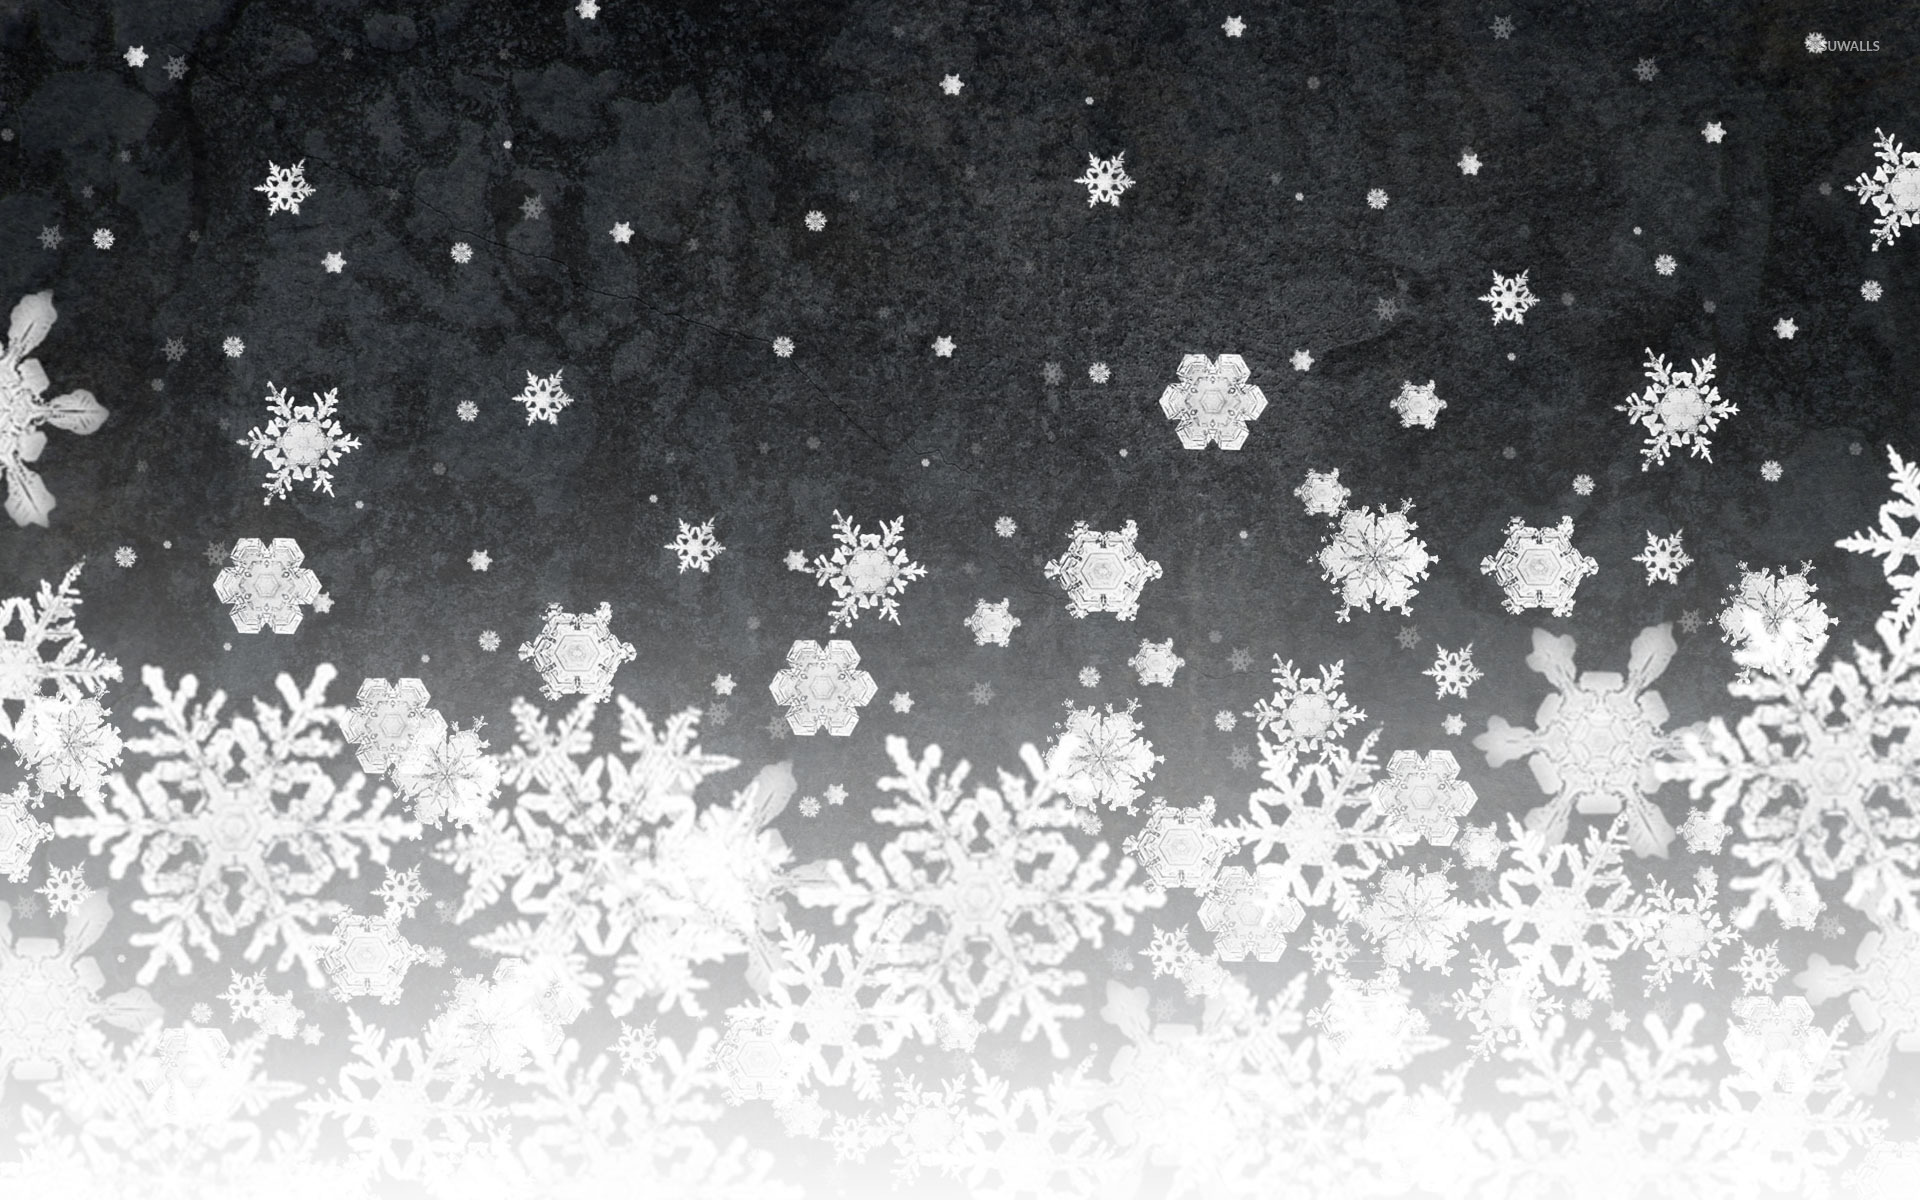 Snow Falling Wallpapers Free Download Snowflakes 5 Wallpaper Artistic Wallpapers 16243